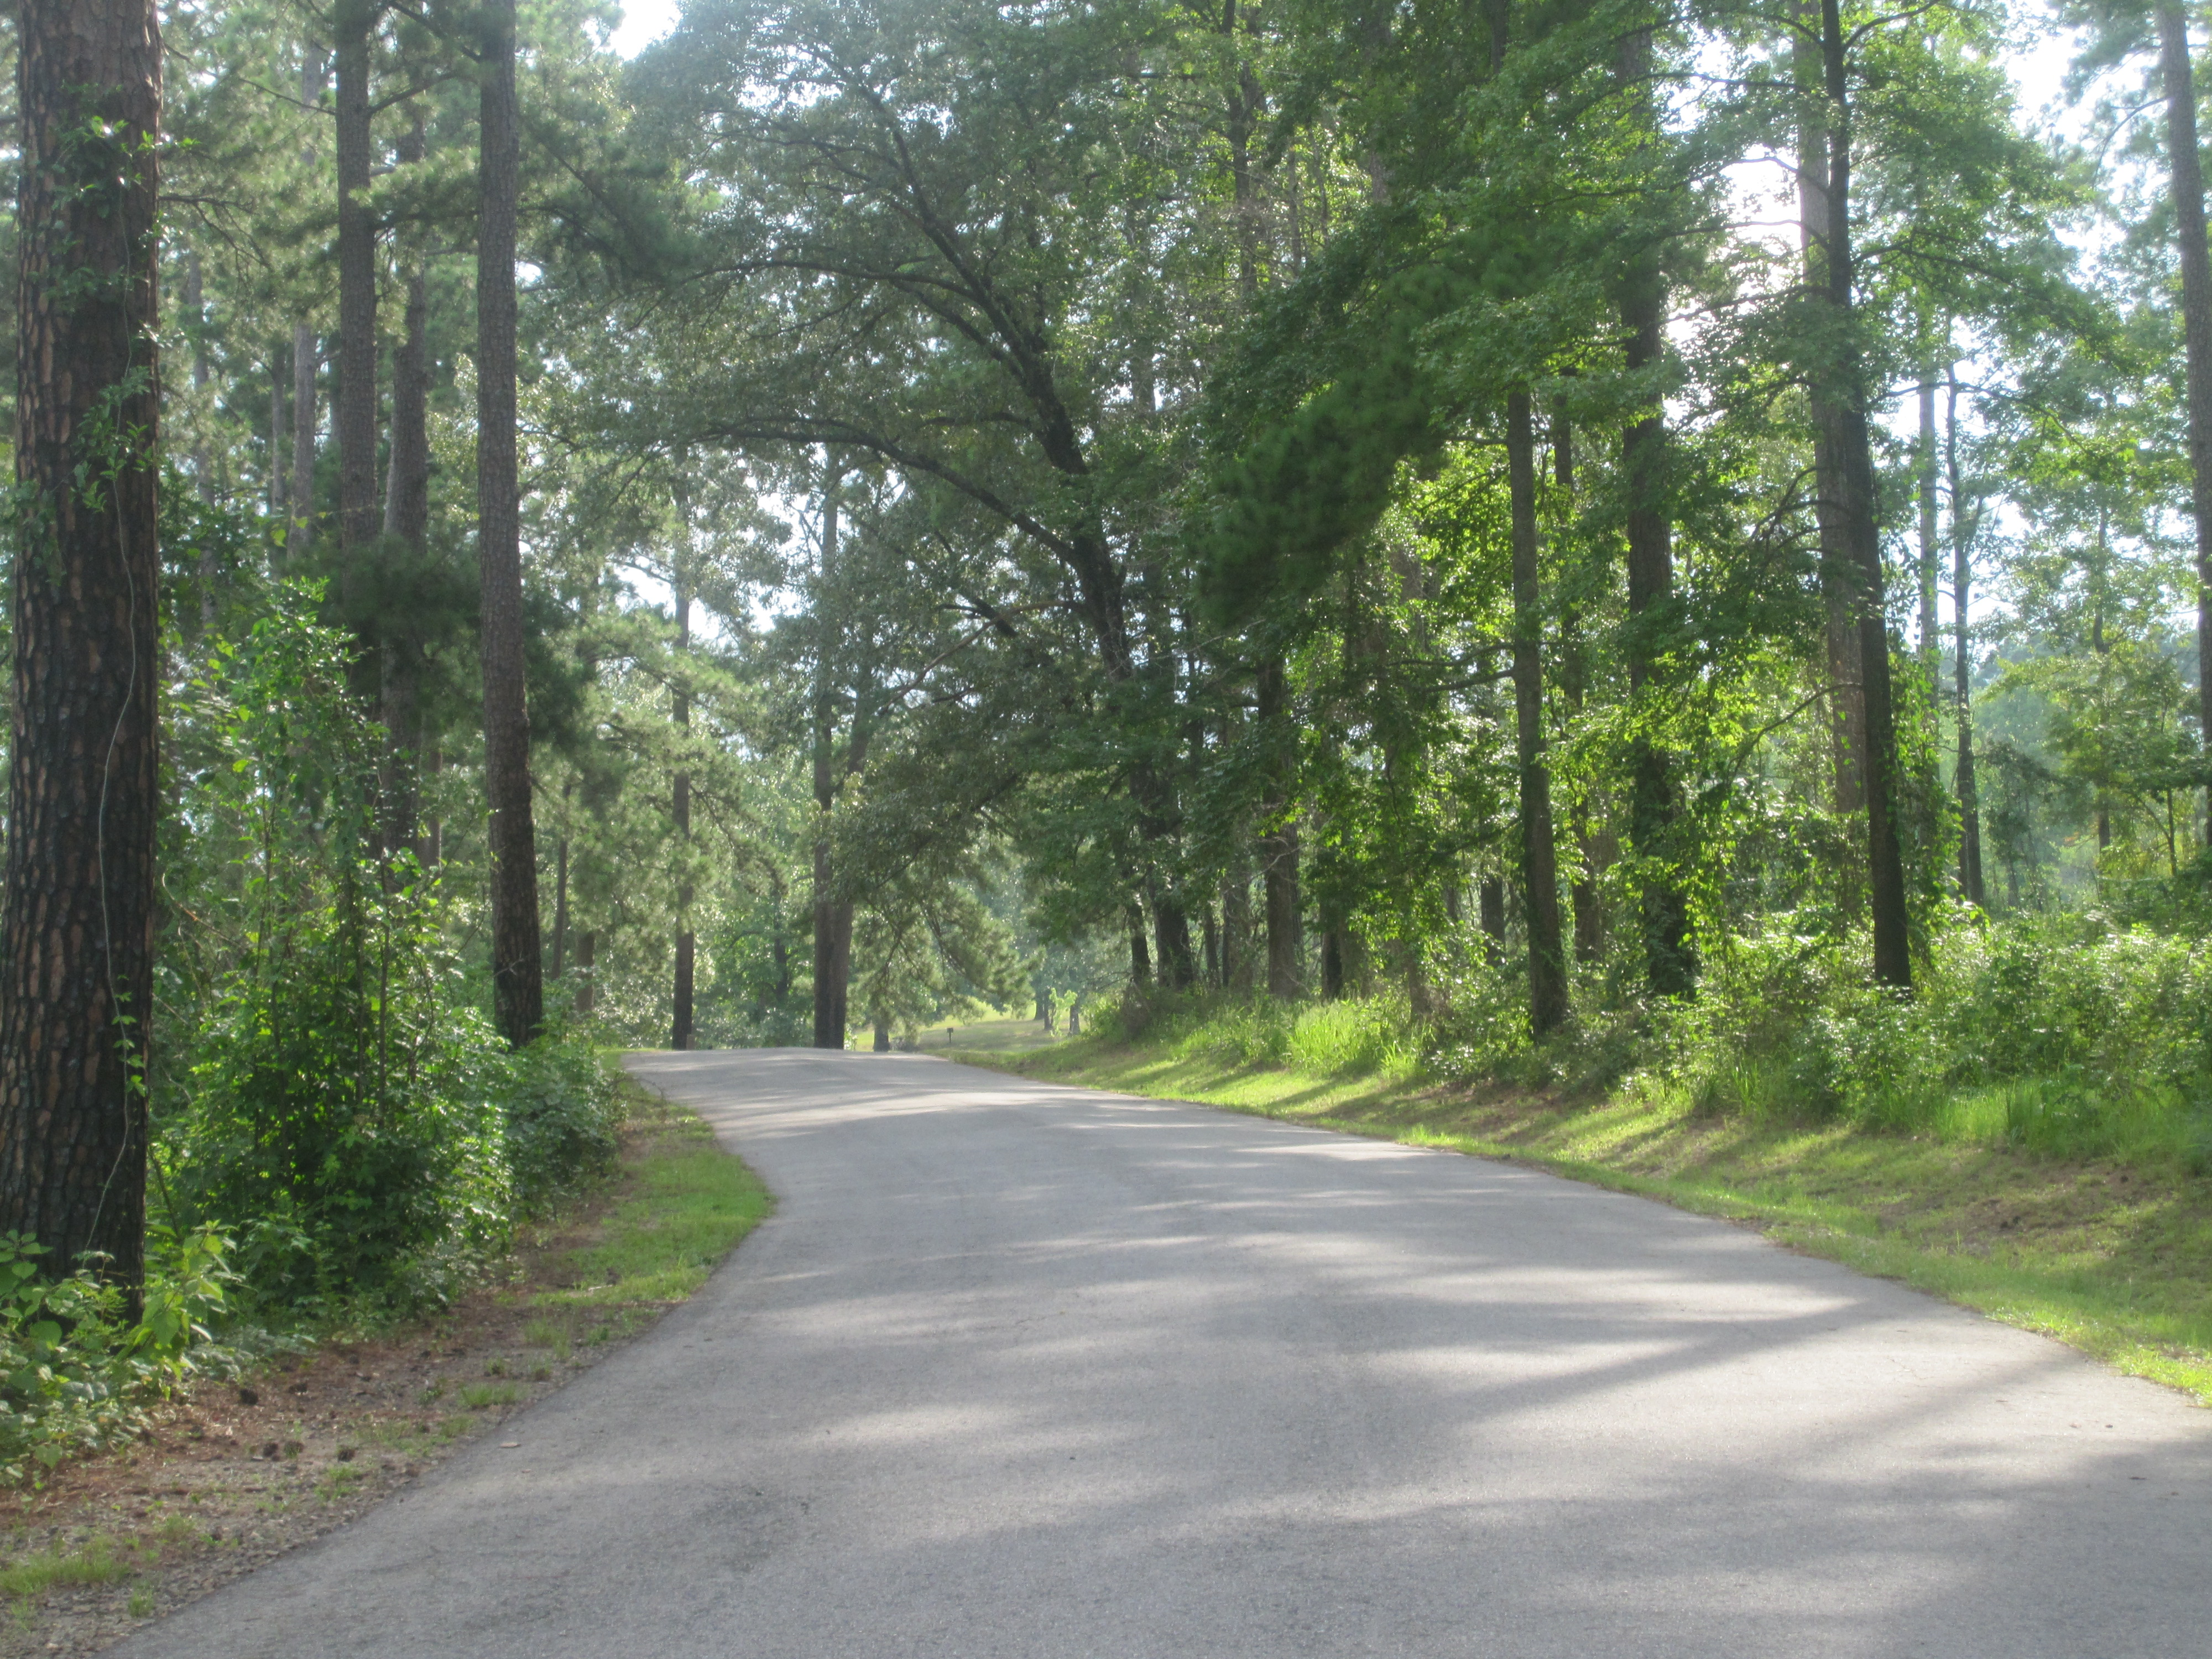 File:Wooded road at Caney Lake IMG 2184 1.JPG - Wikipedia, the ...